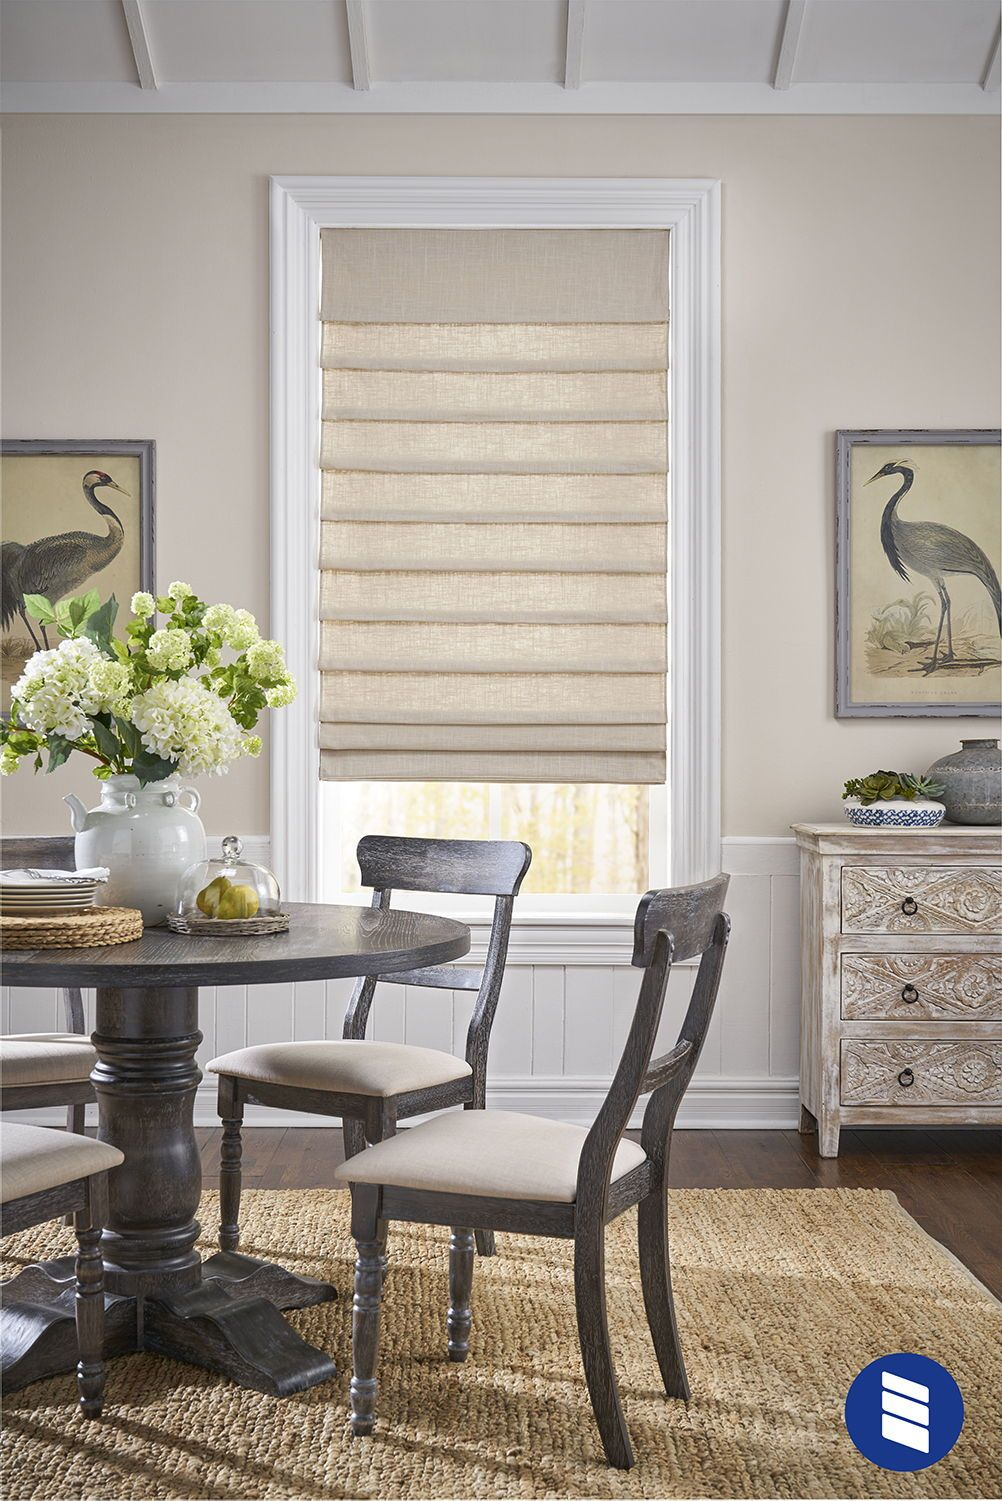 Designer Roman Shade Roman Shades Living Room Dining Room Window Treatments Window Treatments Living Room